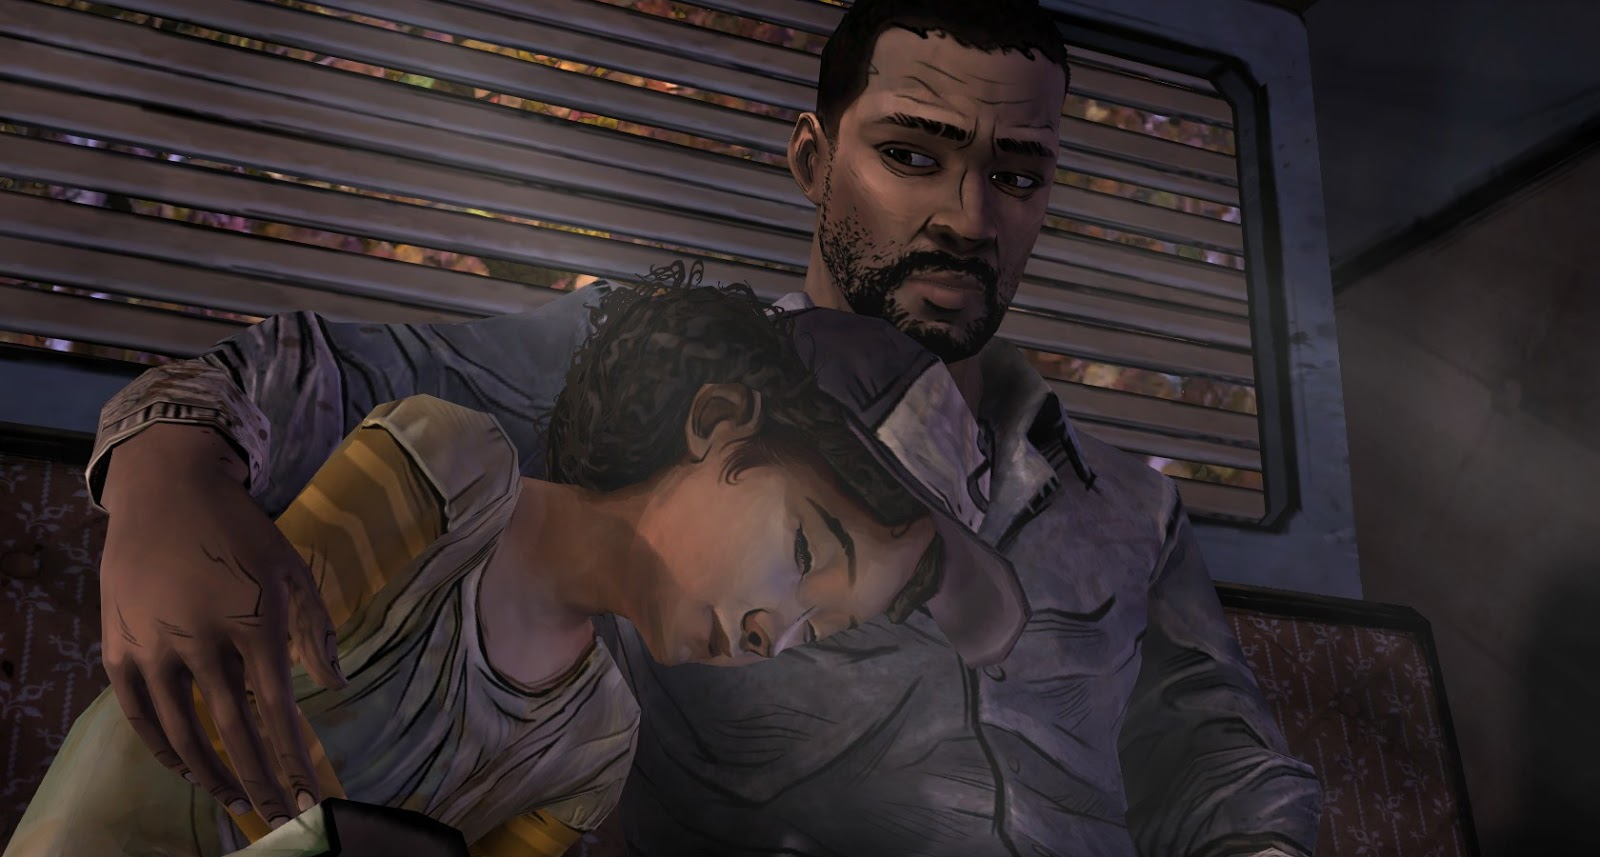 Lee and Clementine